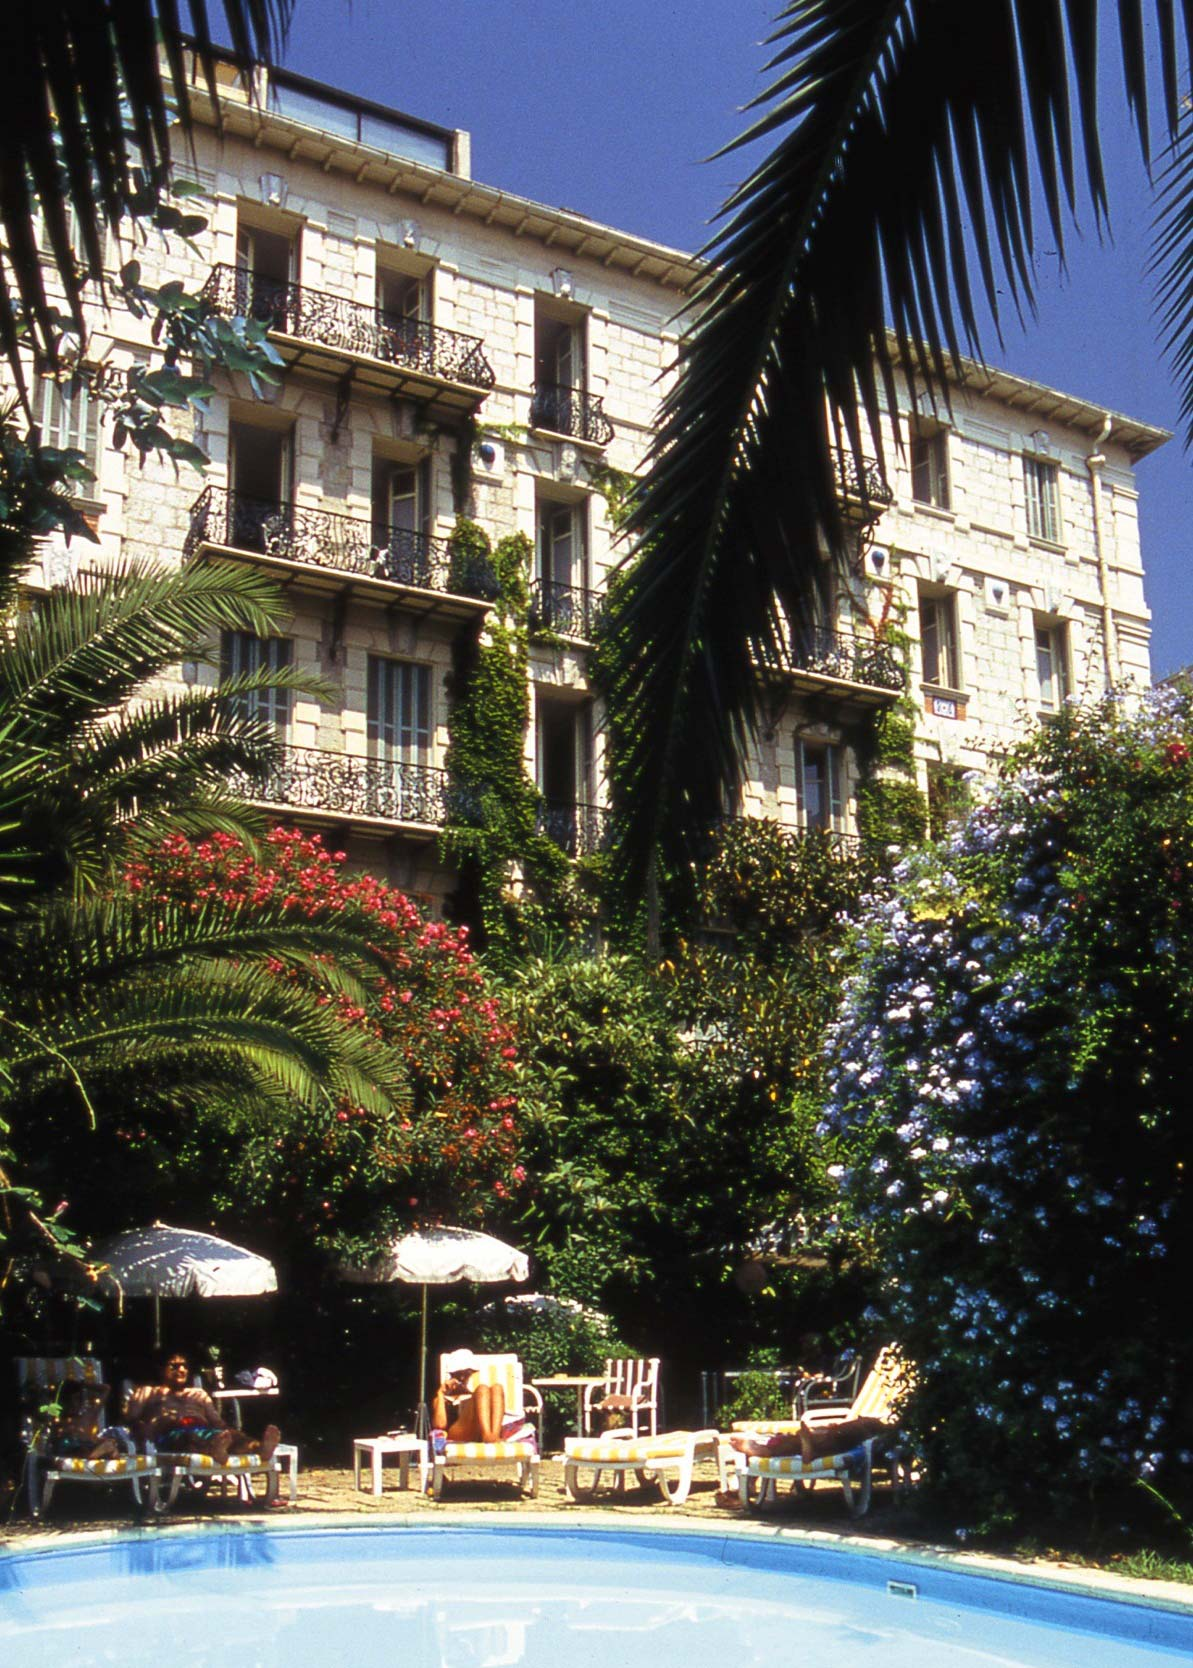 Hotel Windsor Nice - Hotel Windsor in Nice France